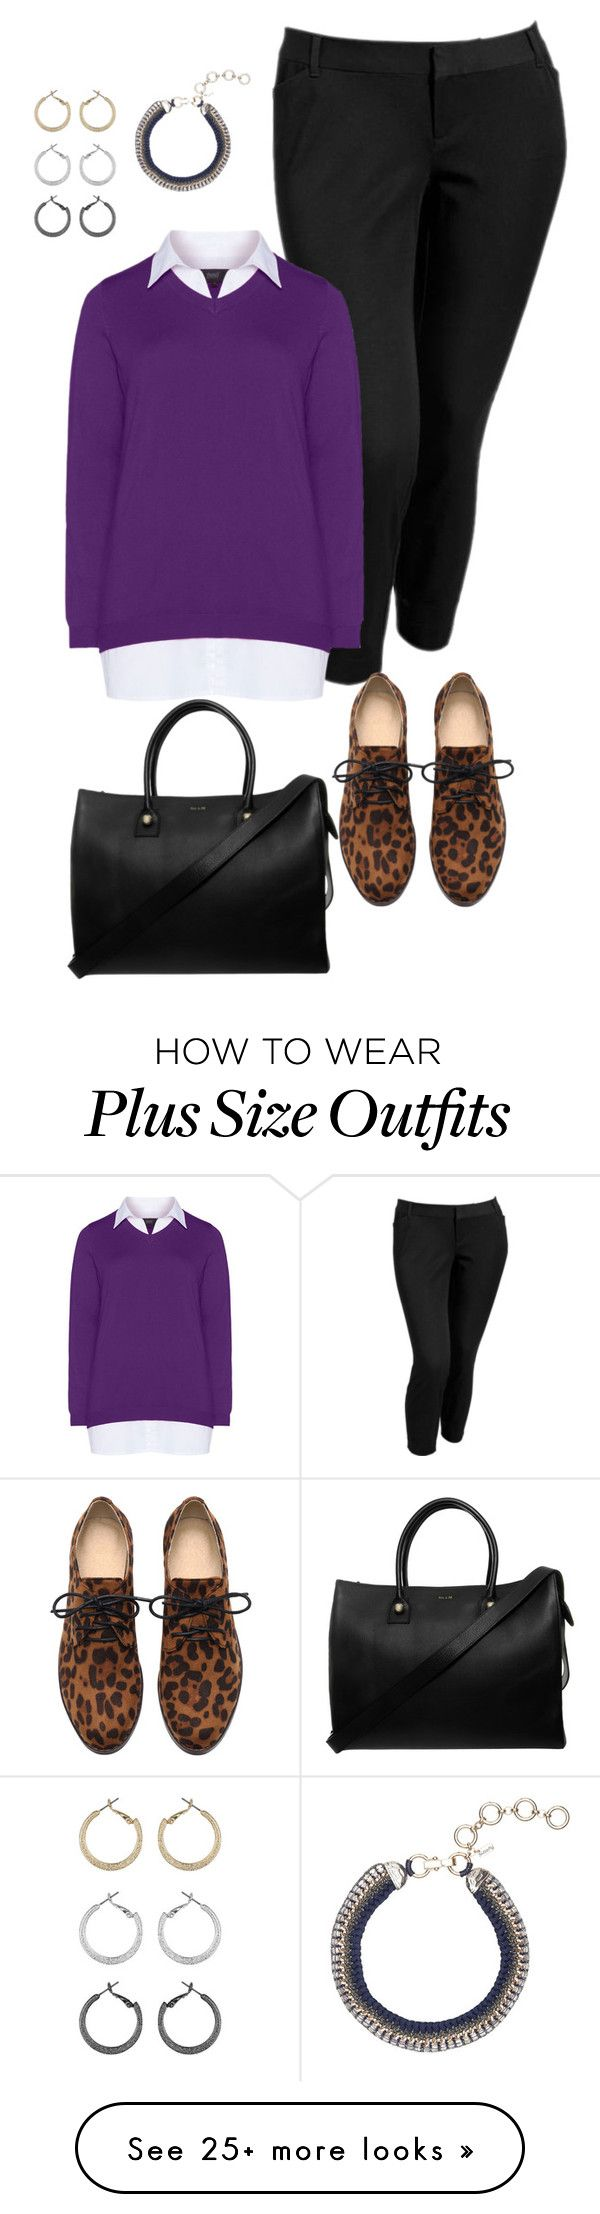 """""""plus size all about the flats/working it"""" by kristie-payne on Polyvore featuring Old Navy, Paul & Joe, Topshop and Zhenzi"""